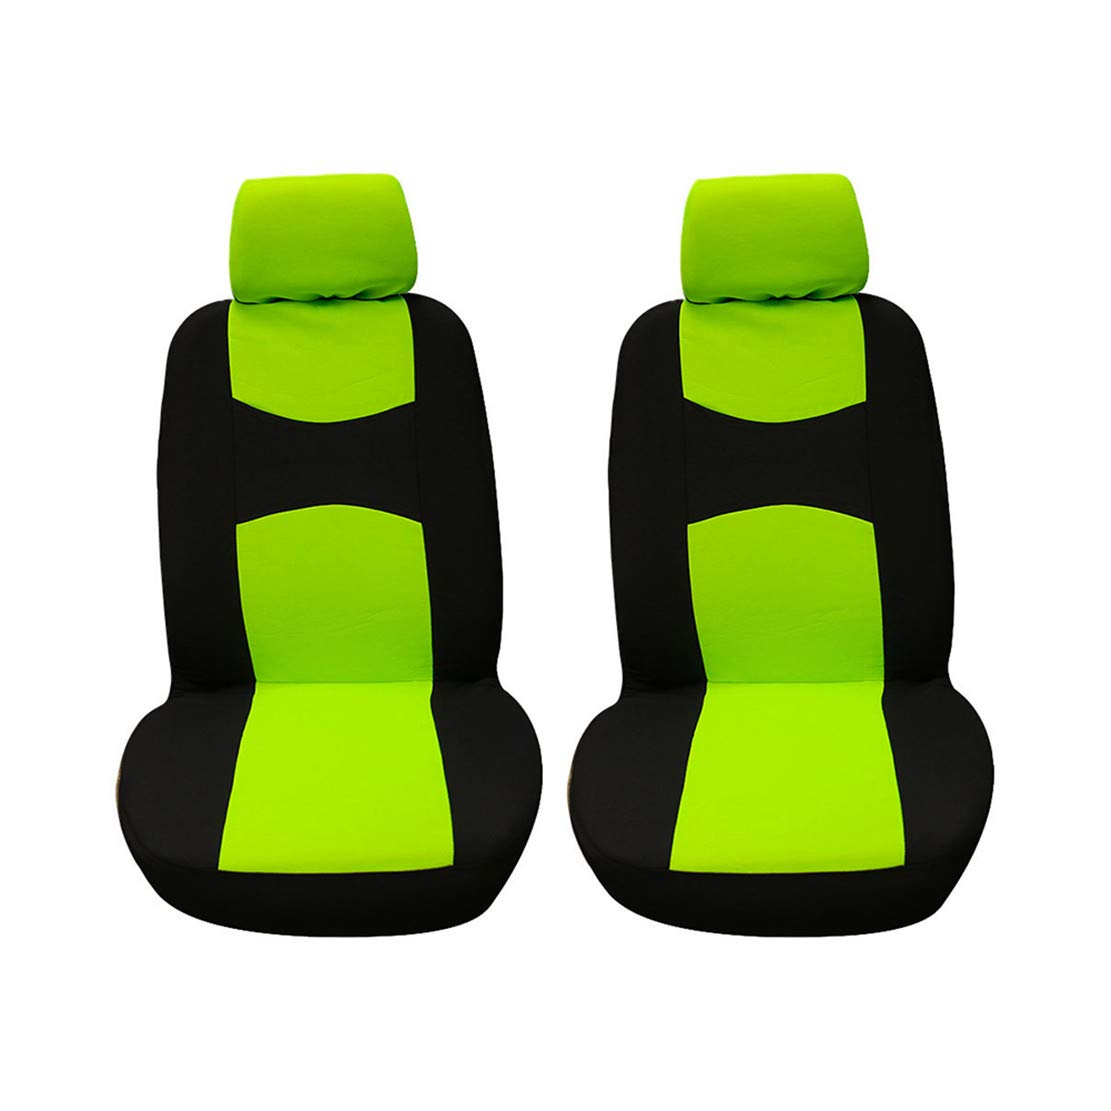 Full Set Front /& Rear Universal Resistant Covers Set GODGETS Car Seat Covers Auto Interior Accessories Universal Seat Cover Protector,Black Red,2 * Front Seater 3 * Back Seater